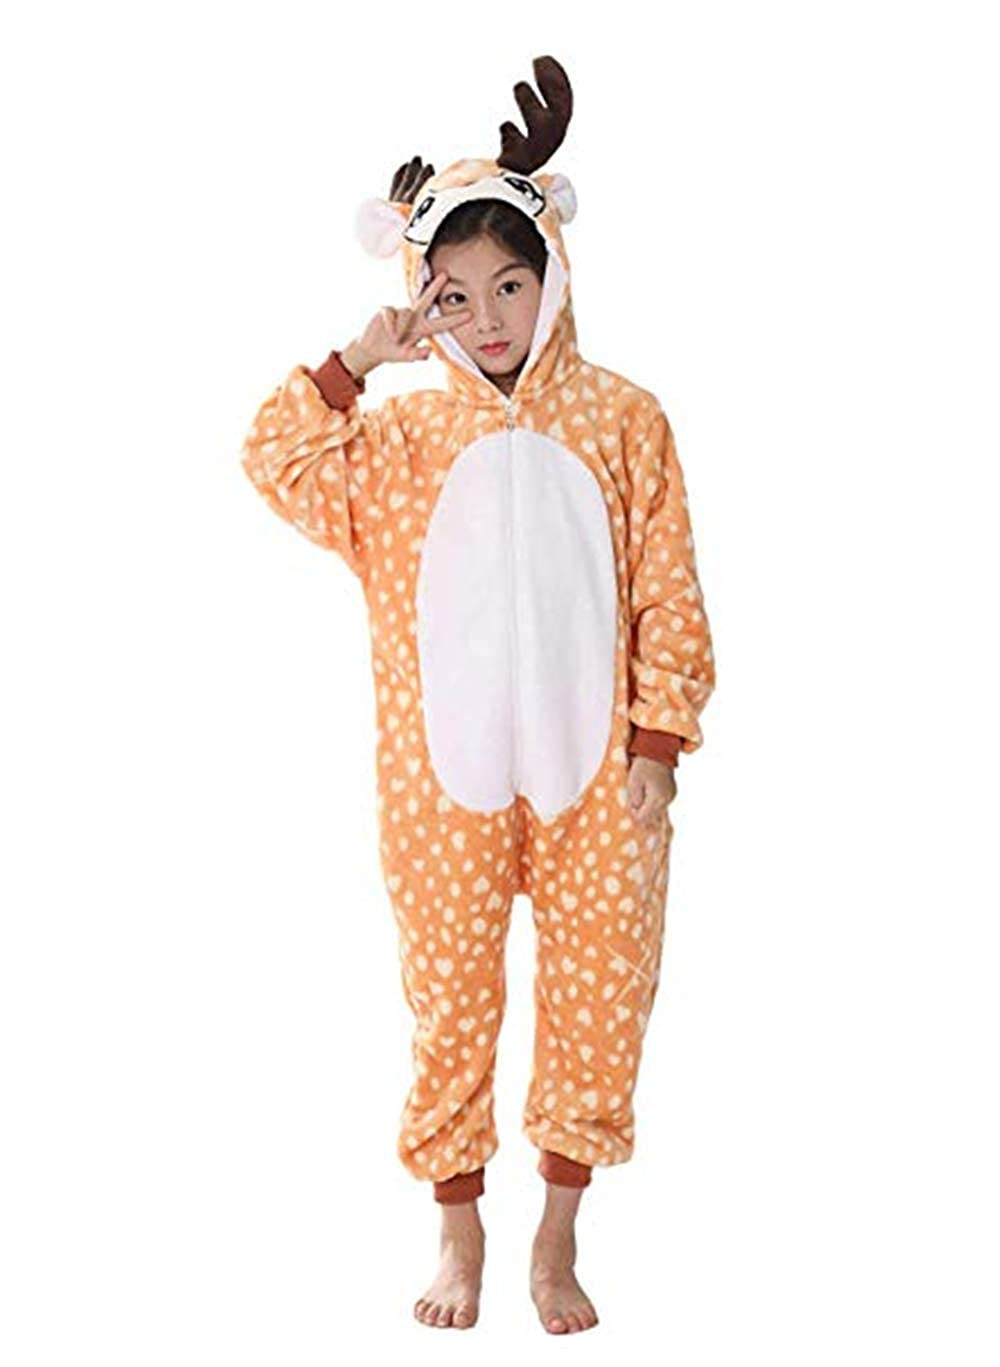 8dad2920a8 Amazon.com  Deer Onesie Adult Kids Pajamas Onepiece Christmas Cosplay  Costume Animal Outfit  Clothing